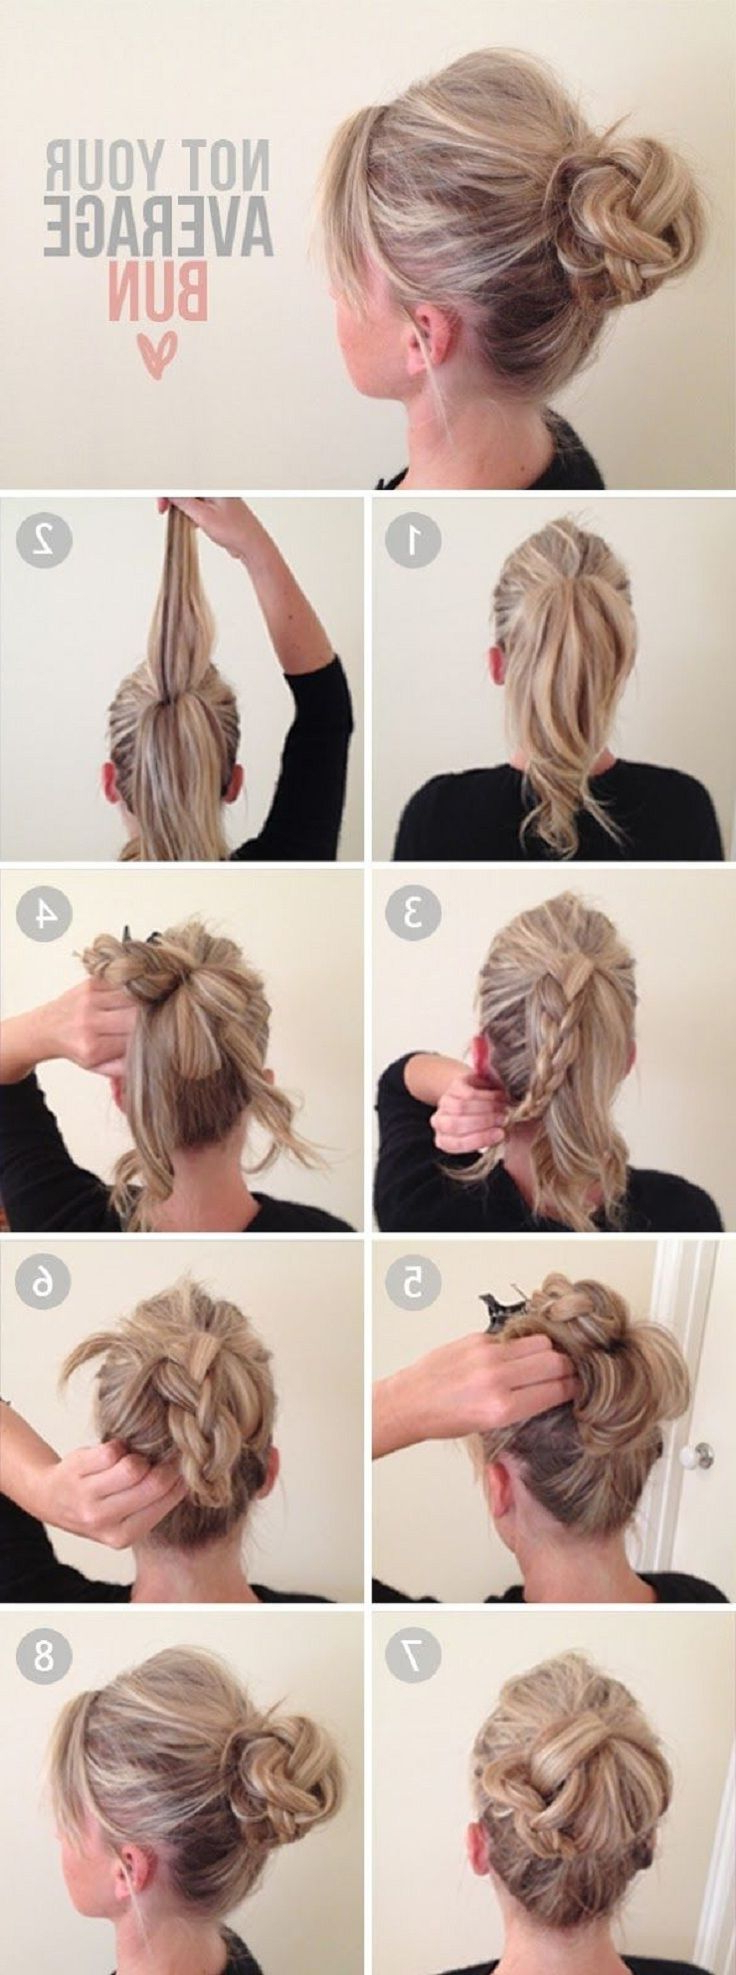 Most Recent Double Crown Updo Braided Hairstyles Pertaining To 14 Amazing Double Braid Bun Hairstyles – Pretty Designs (View 18 of 20)